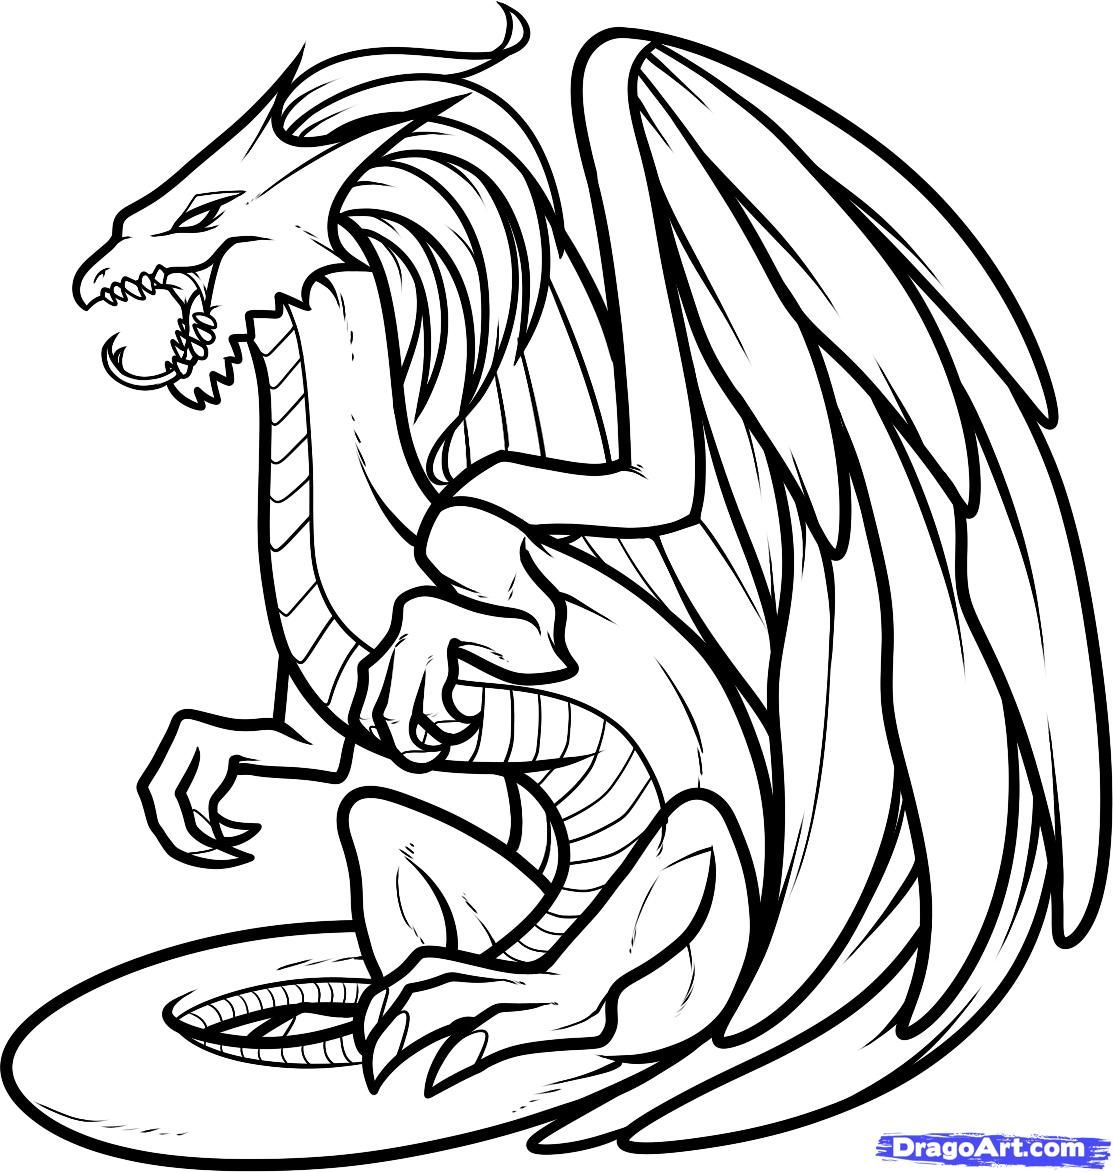 dragon head coloring page ethel the dragon by fairy guinevere on deviantart coloring dragon page head